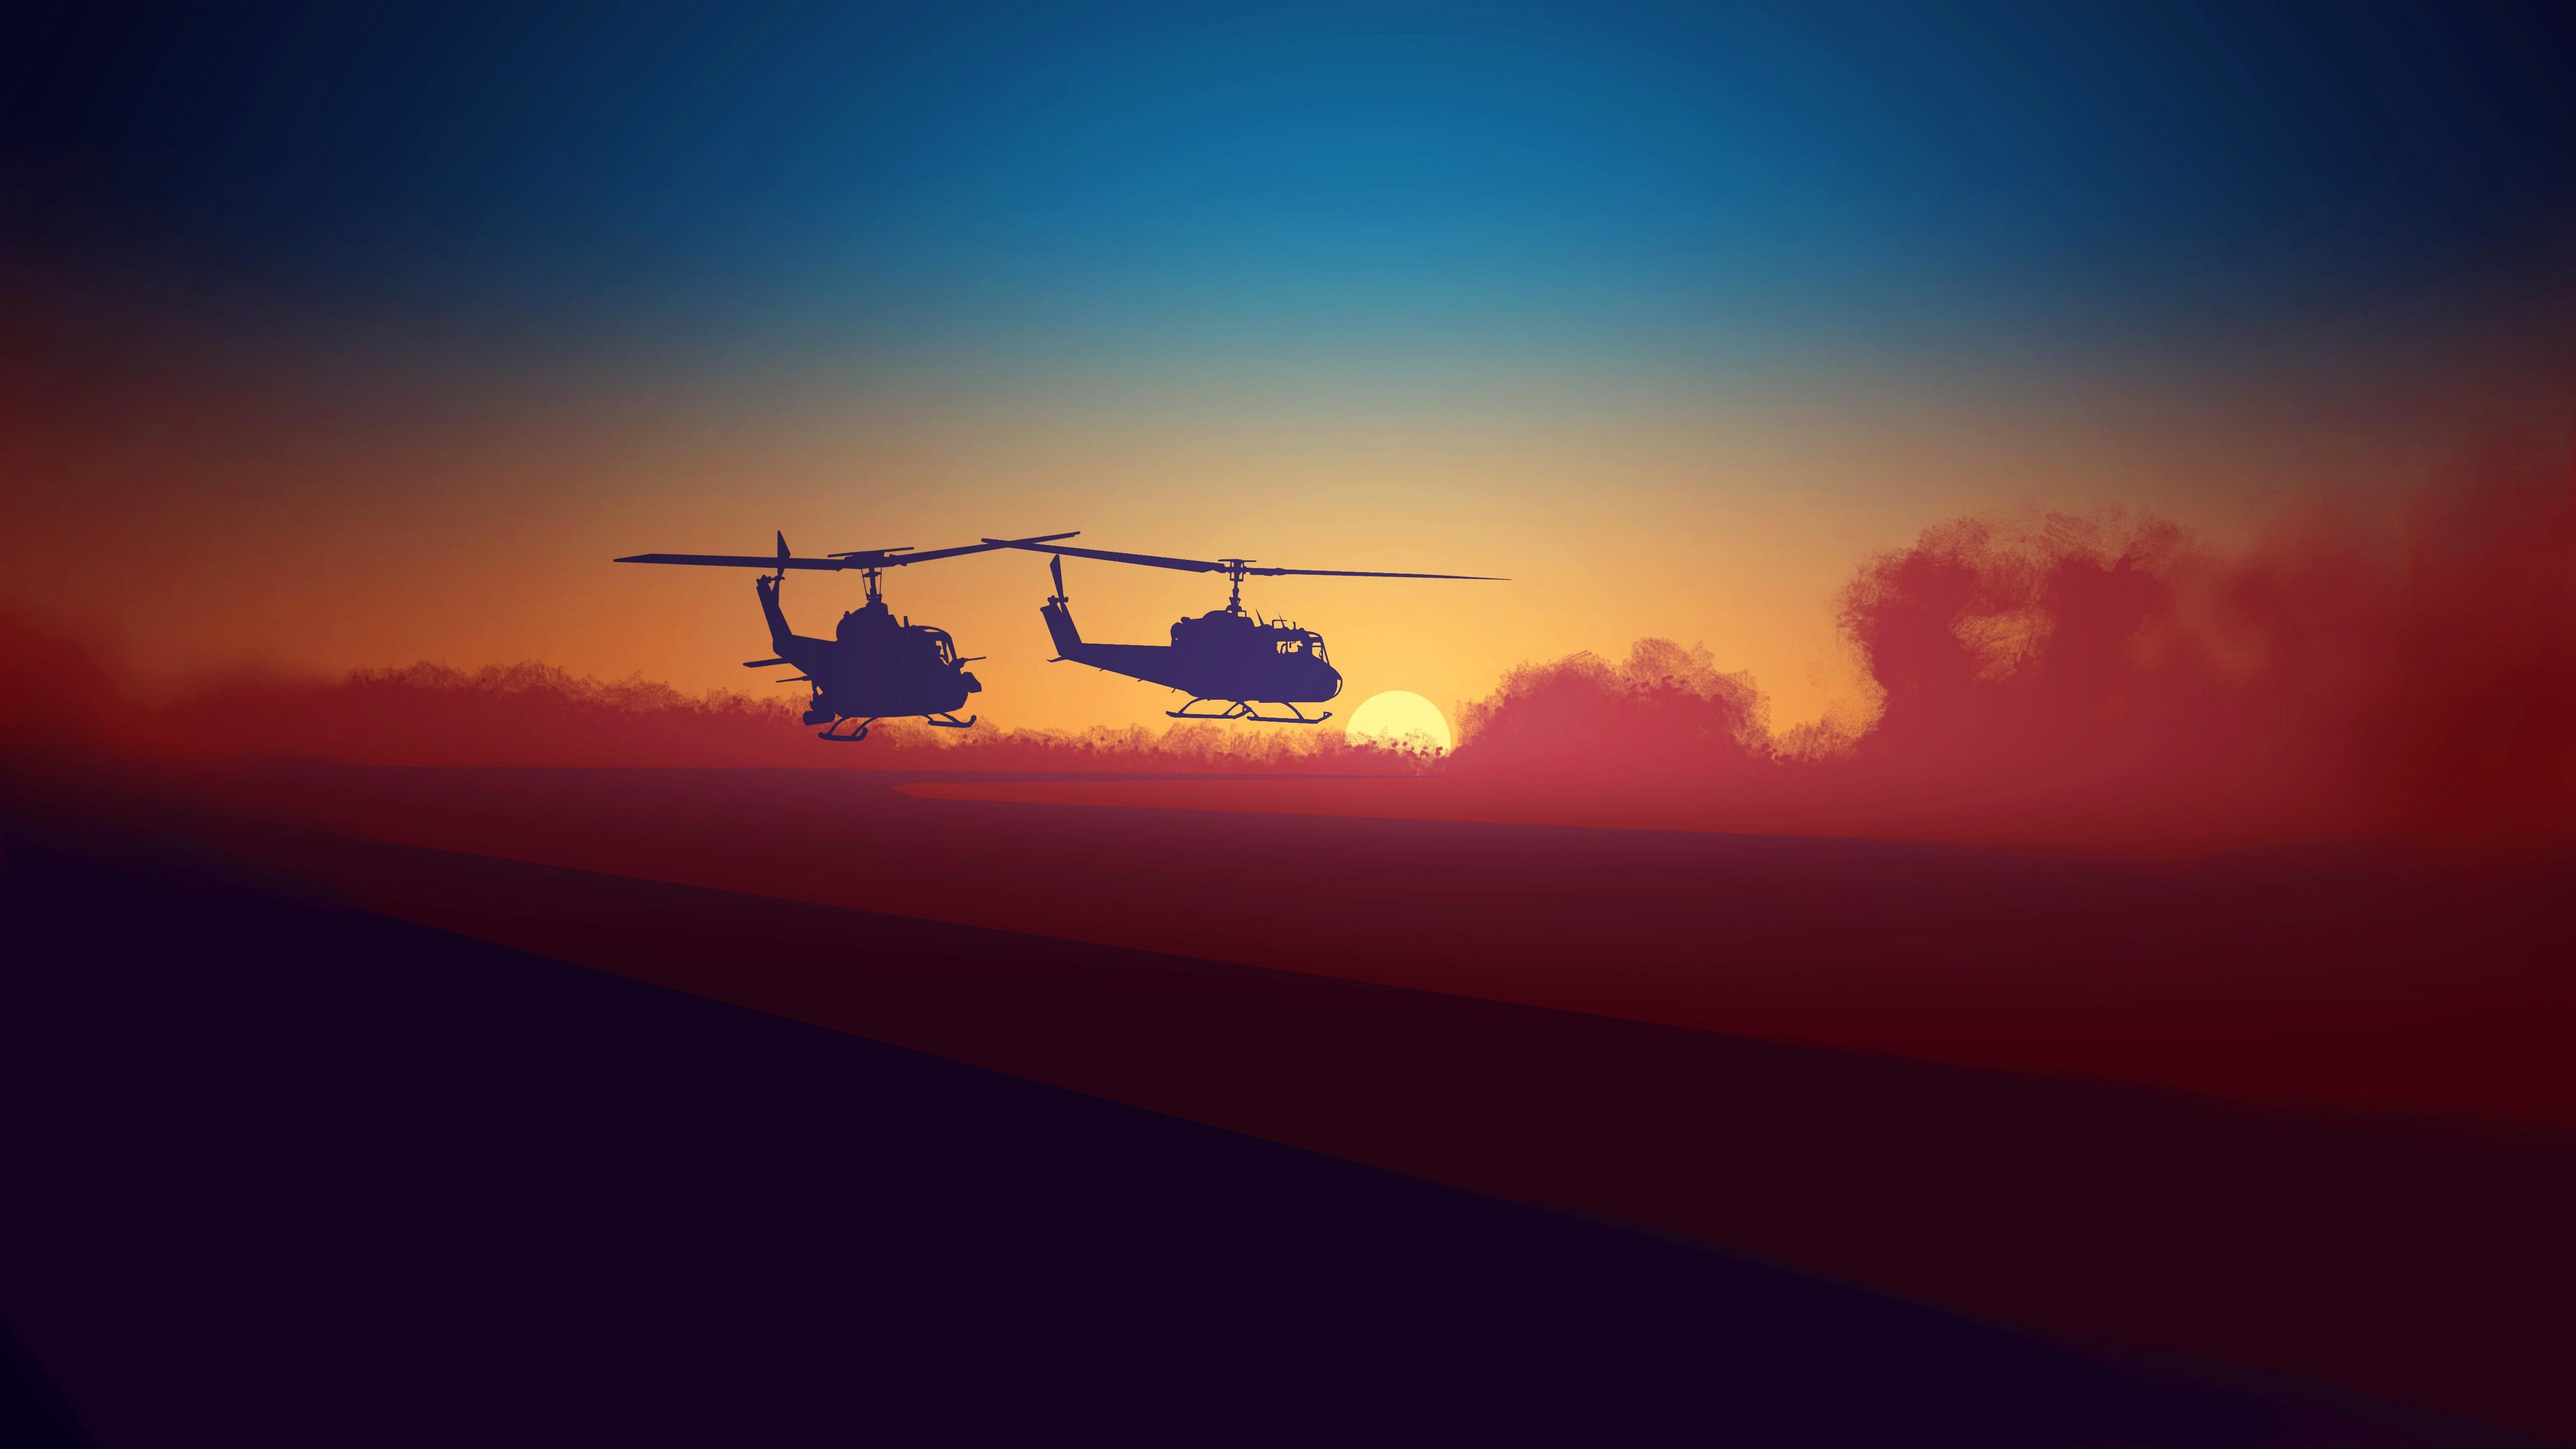 Helicopters silhouette wallpaper